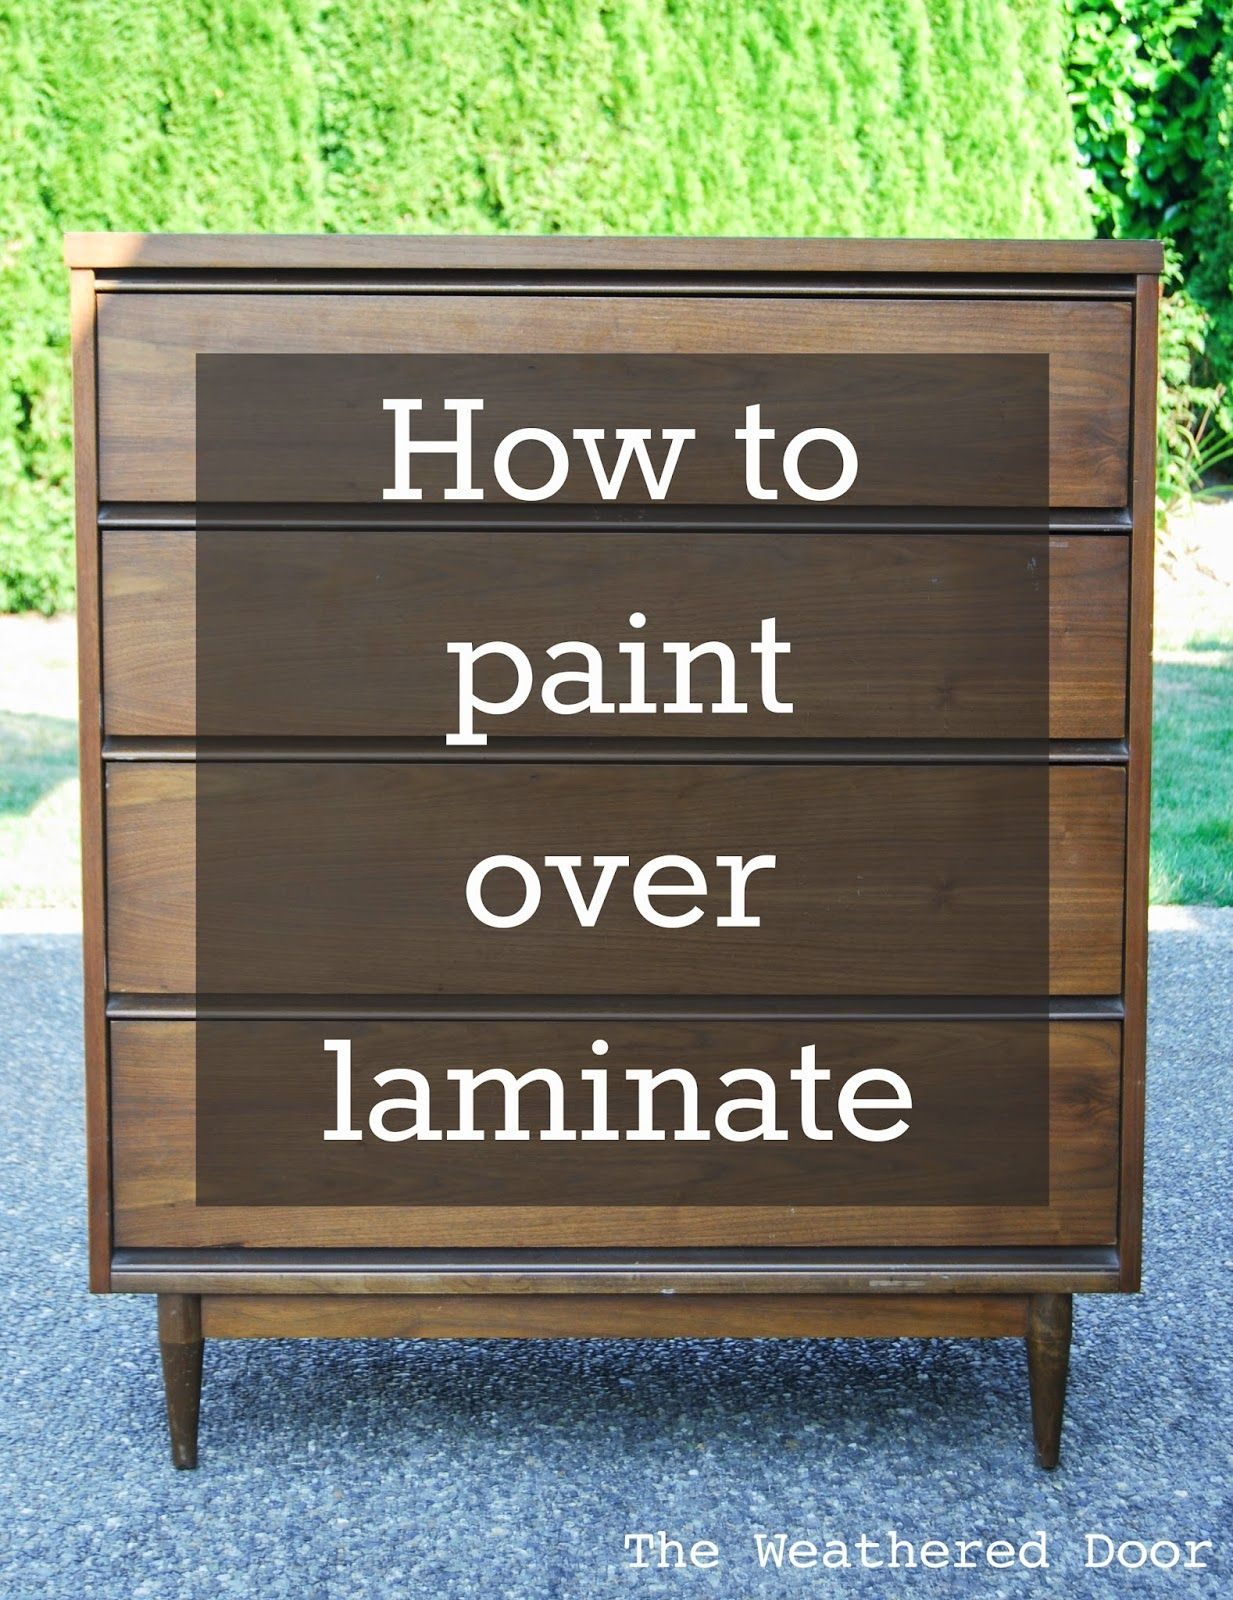 The Weathered Door: How to Paint over Laminate and why I love furniture with laminate tops (and why you should too!) #redoingfurniture